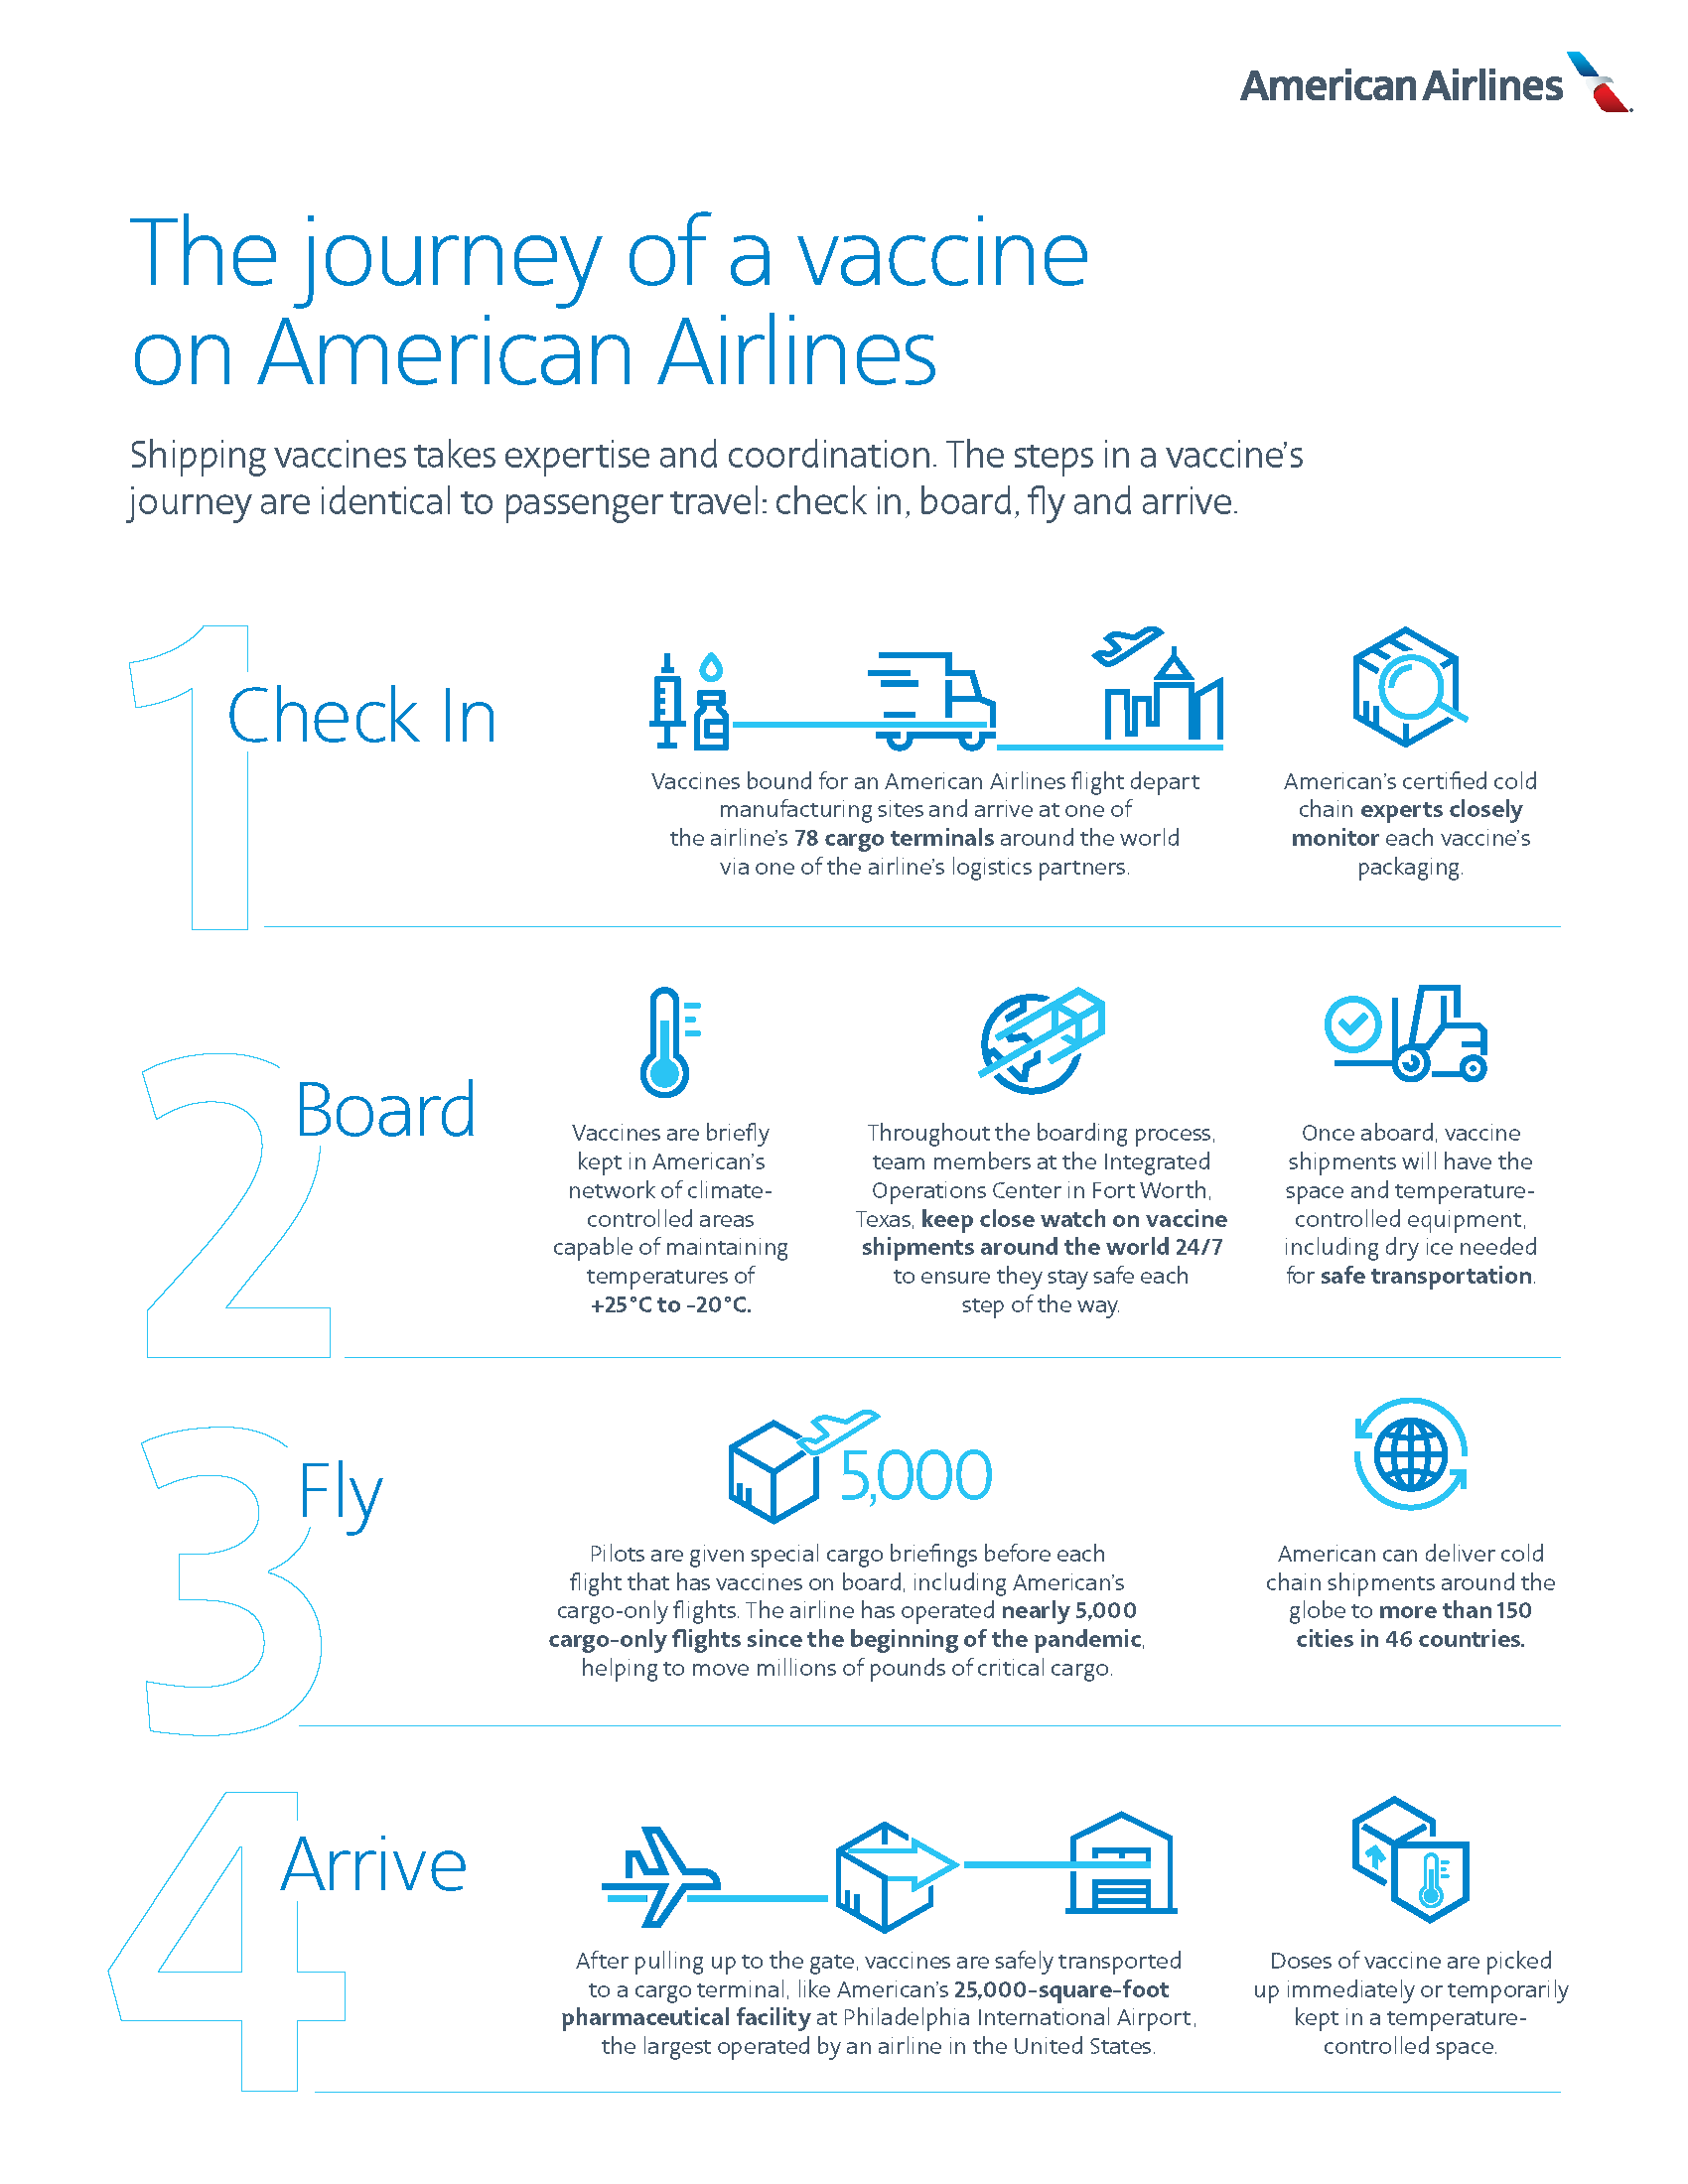 The journey of a vaccine on American Airlines